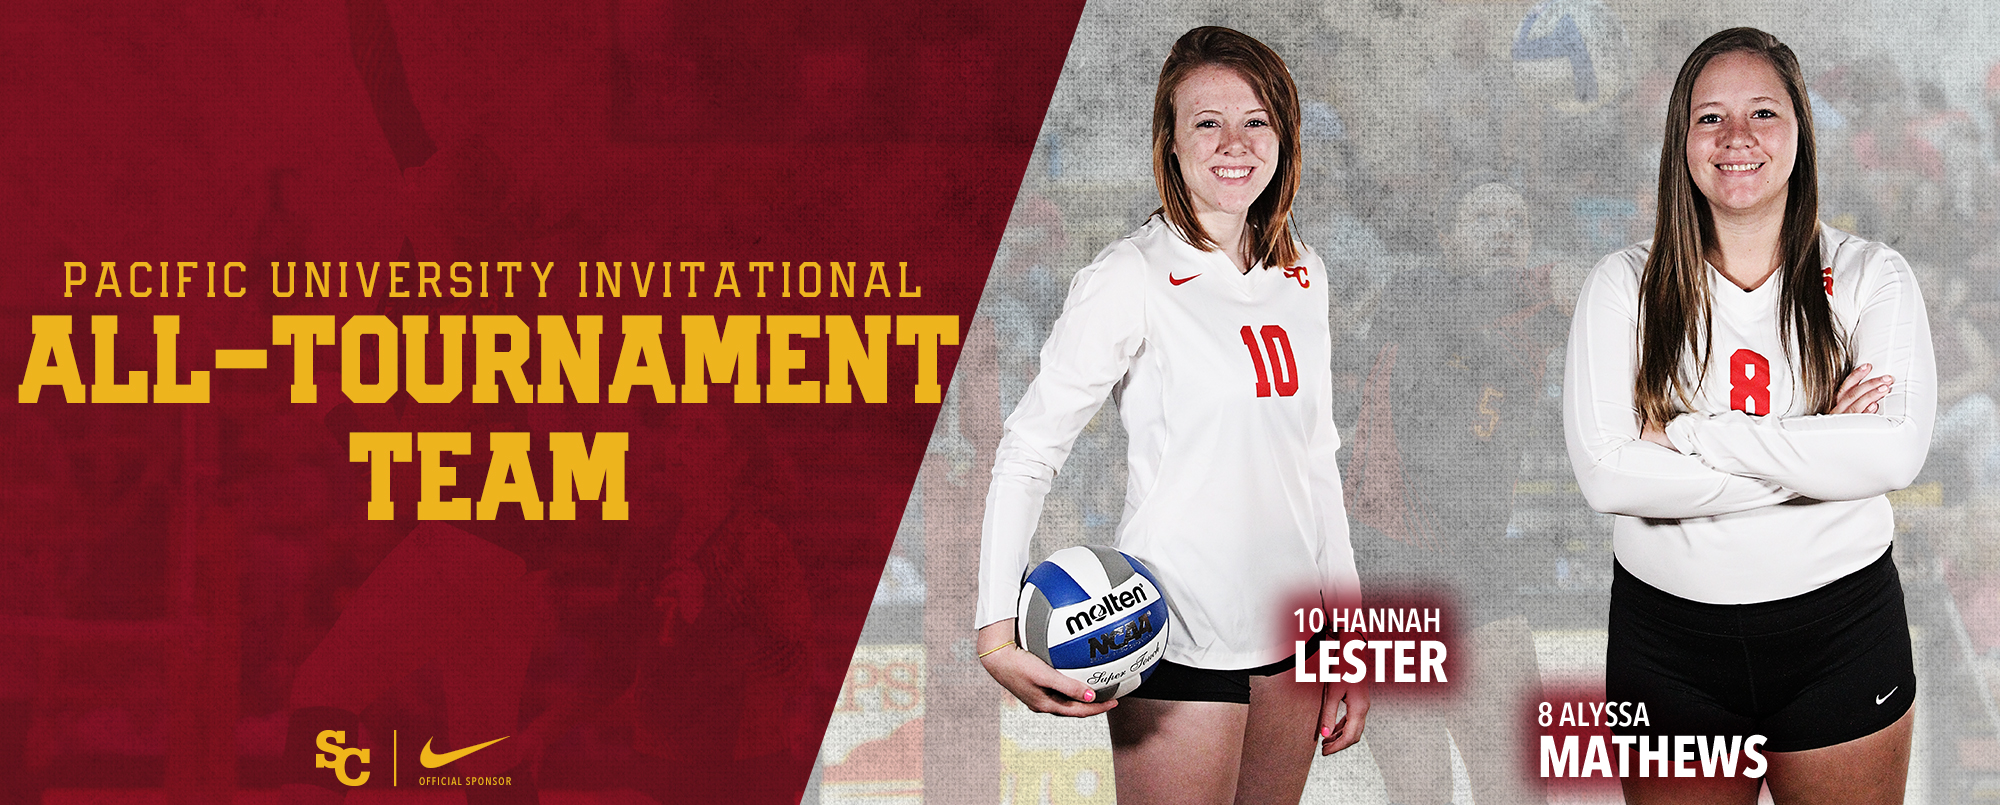 Hannah Lester and Alyssa Mathews were named to the Pacific University Invitational All-Tournament Team.